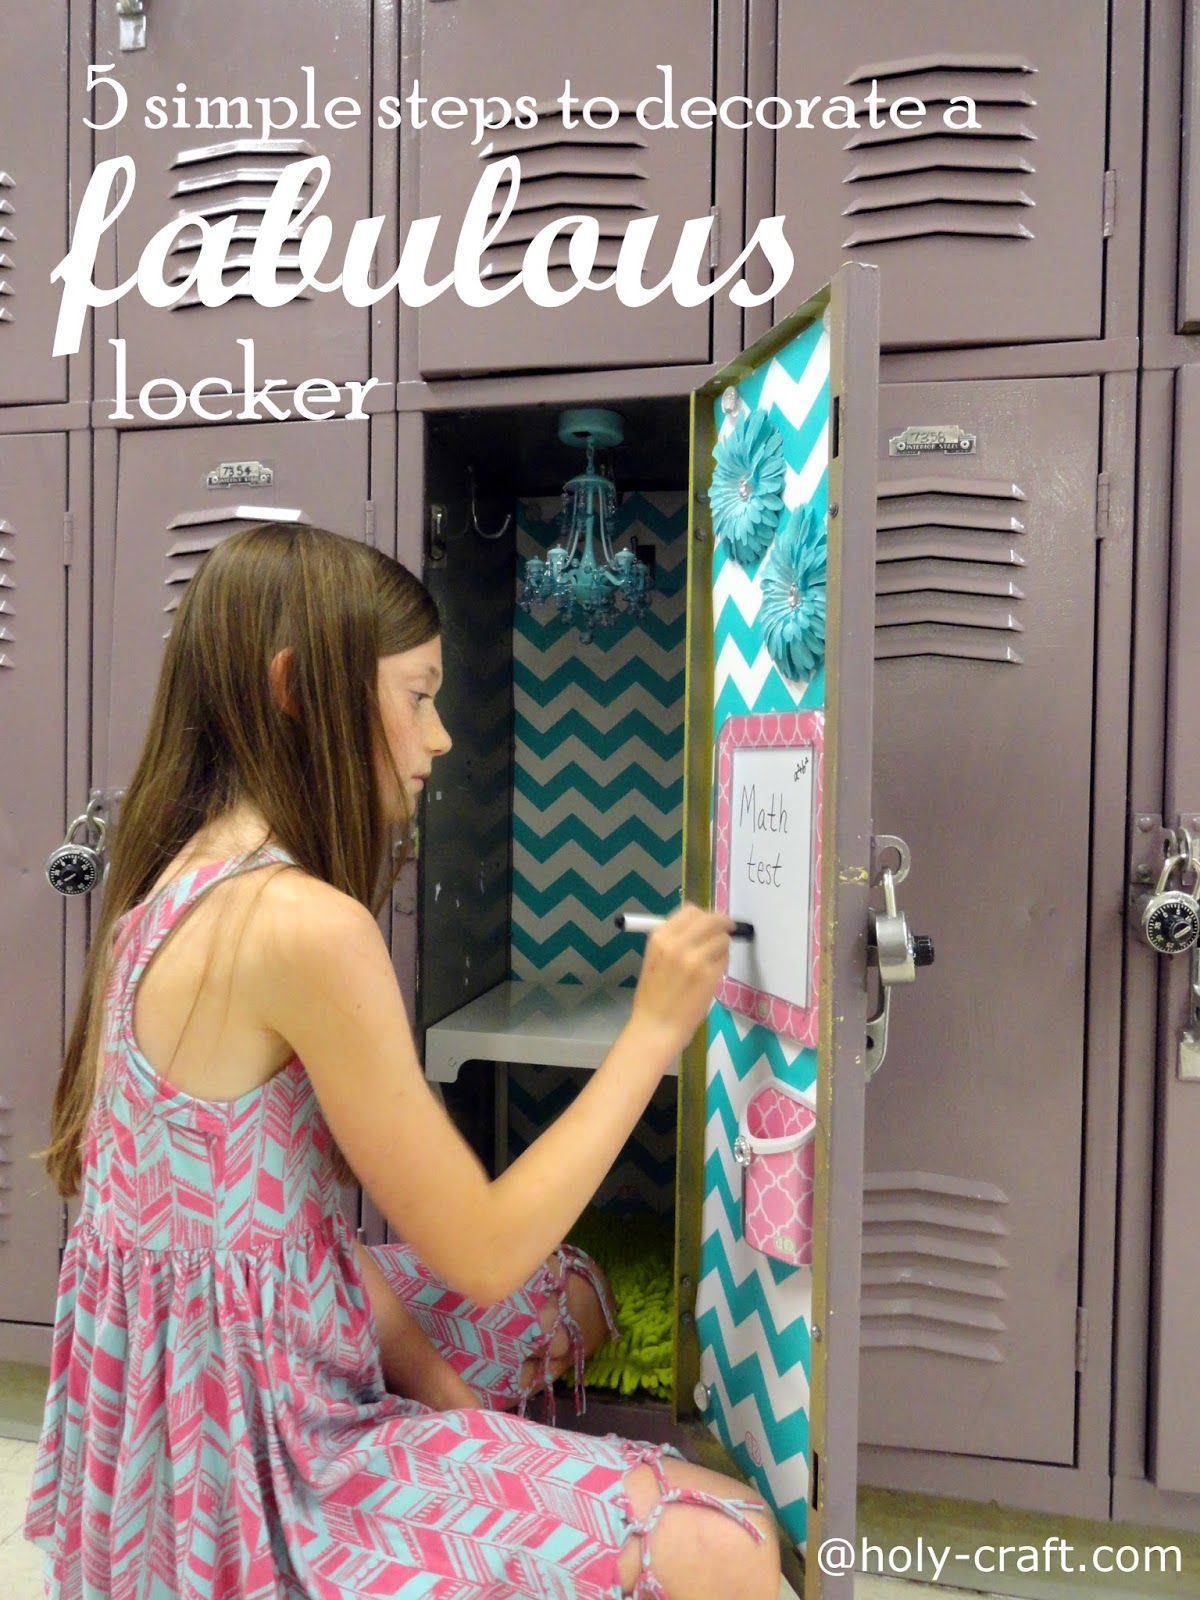 5 simple steps to decorating a fabulous locker with locker lookz 5 simple steps to decorating a fabulous locker with locker lookz arubaitofo Images